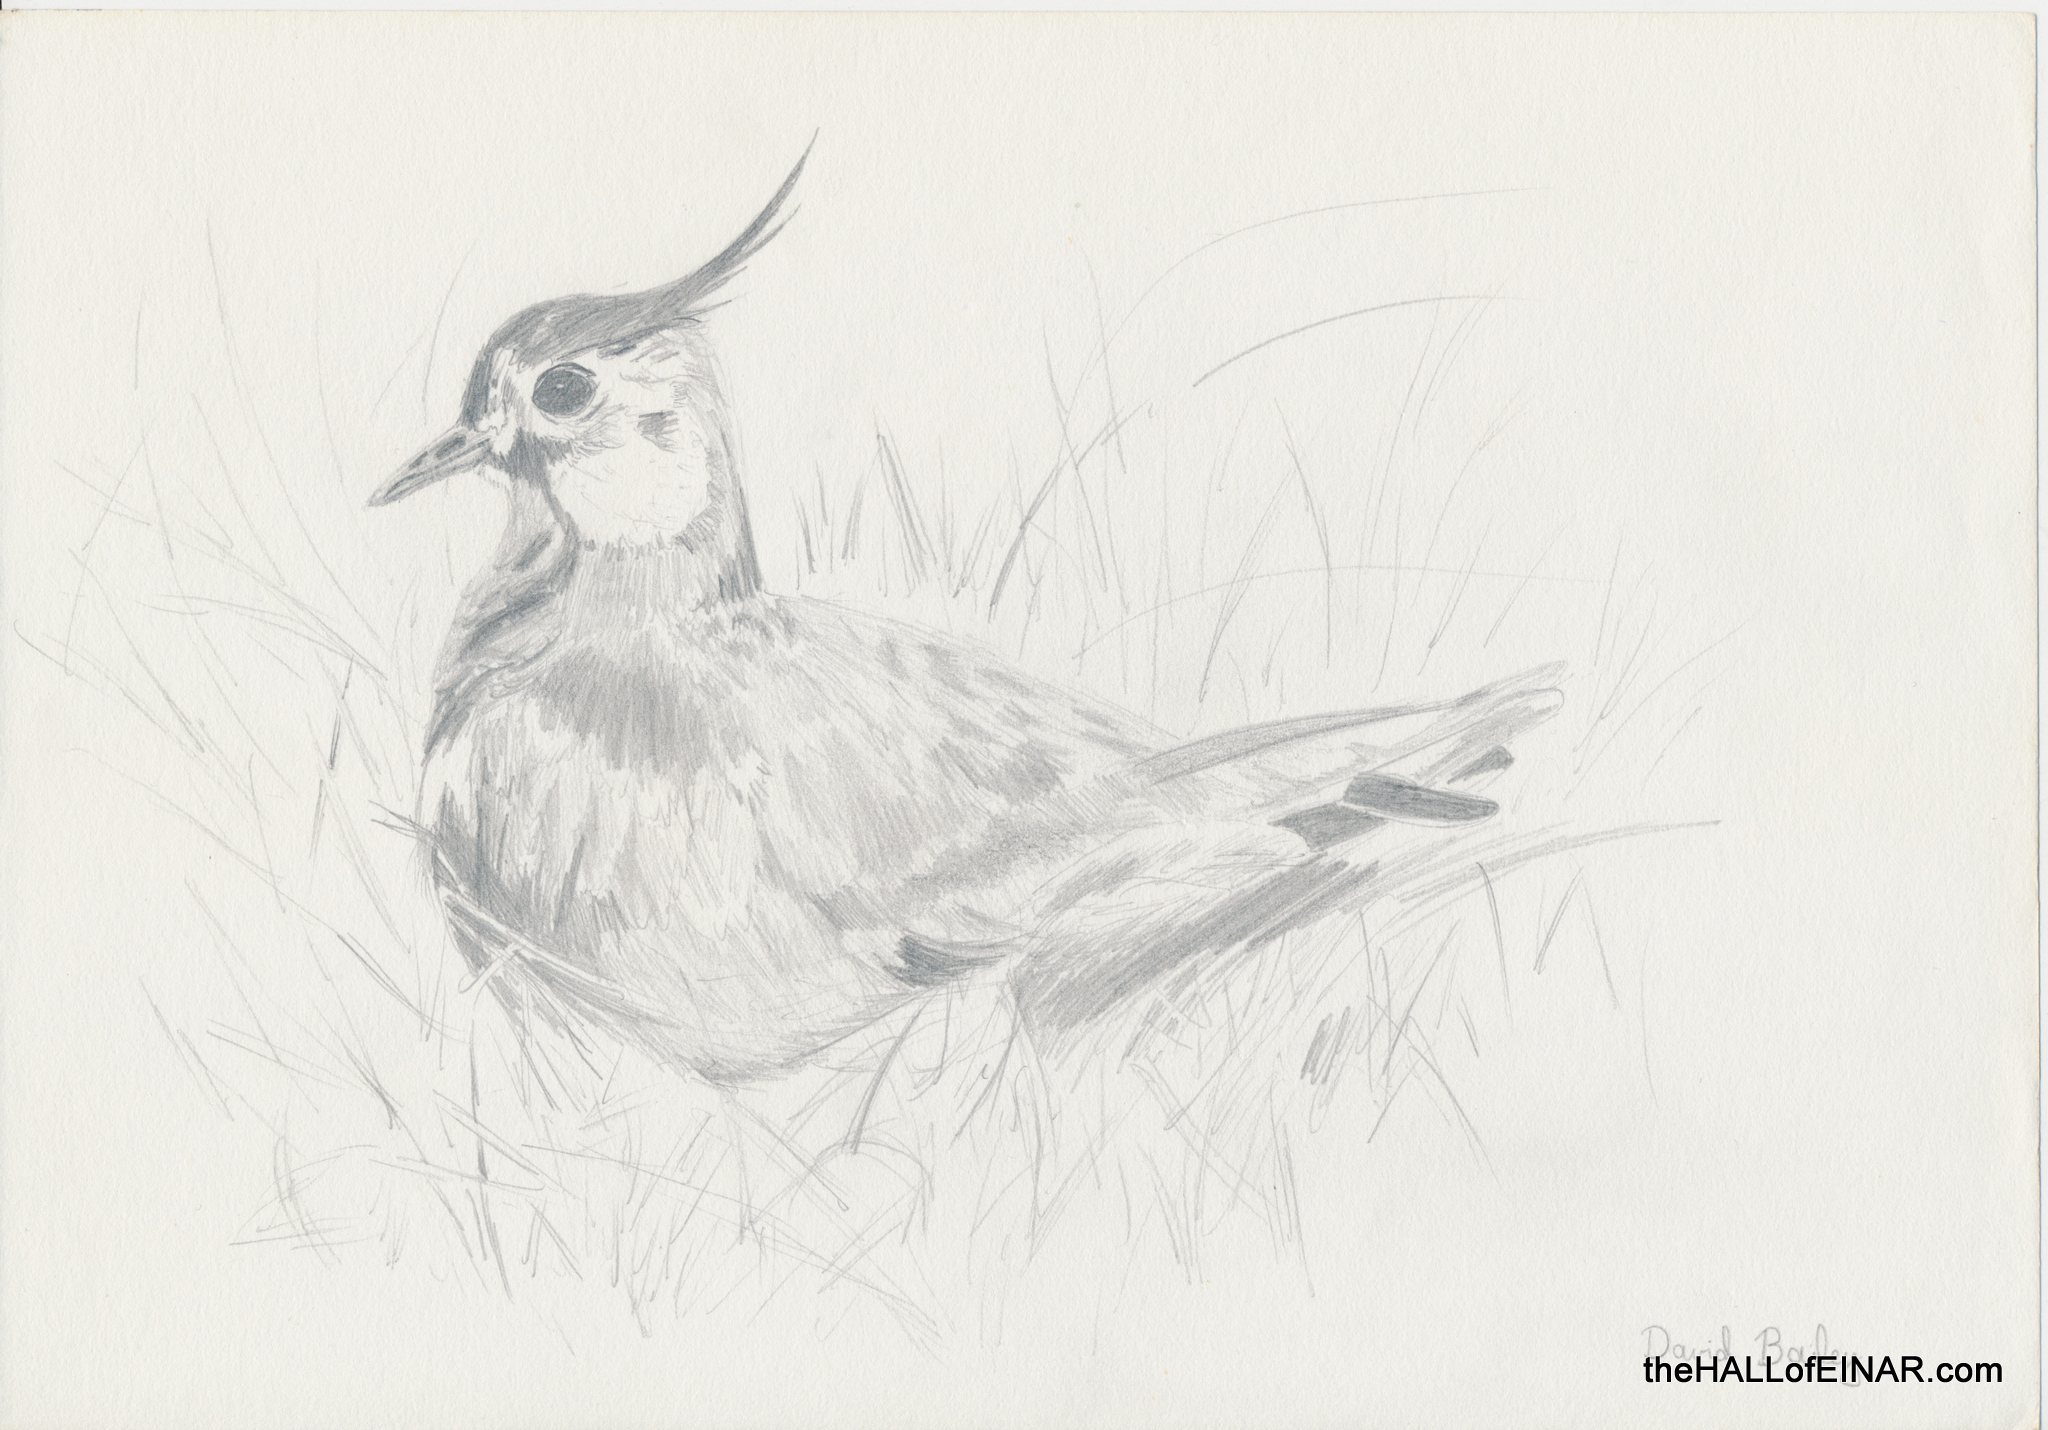 Lapwing - The Hall of Einar - (c) David Bailey (not the)